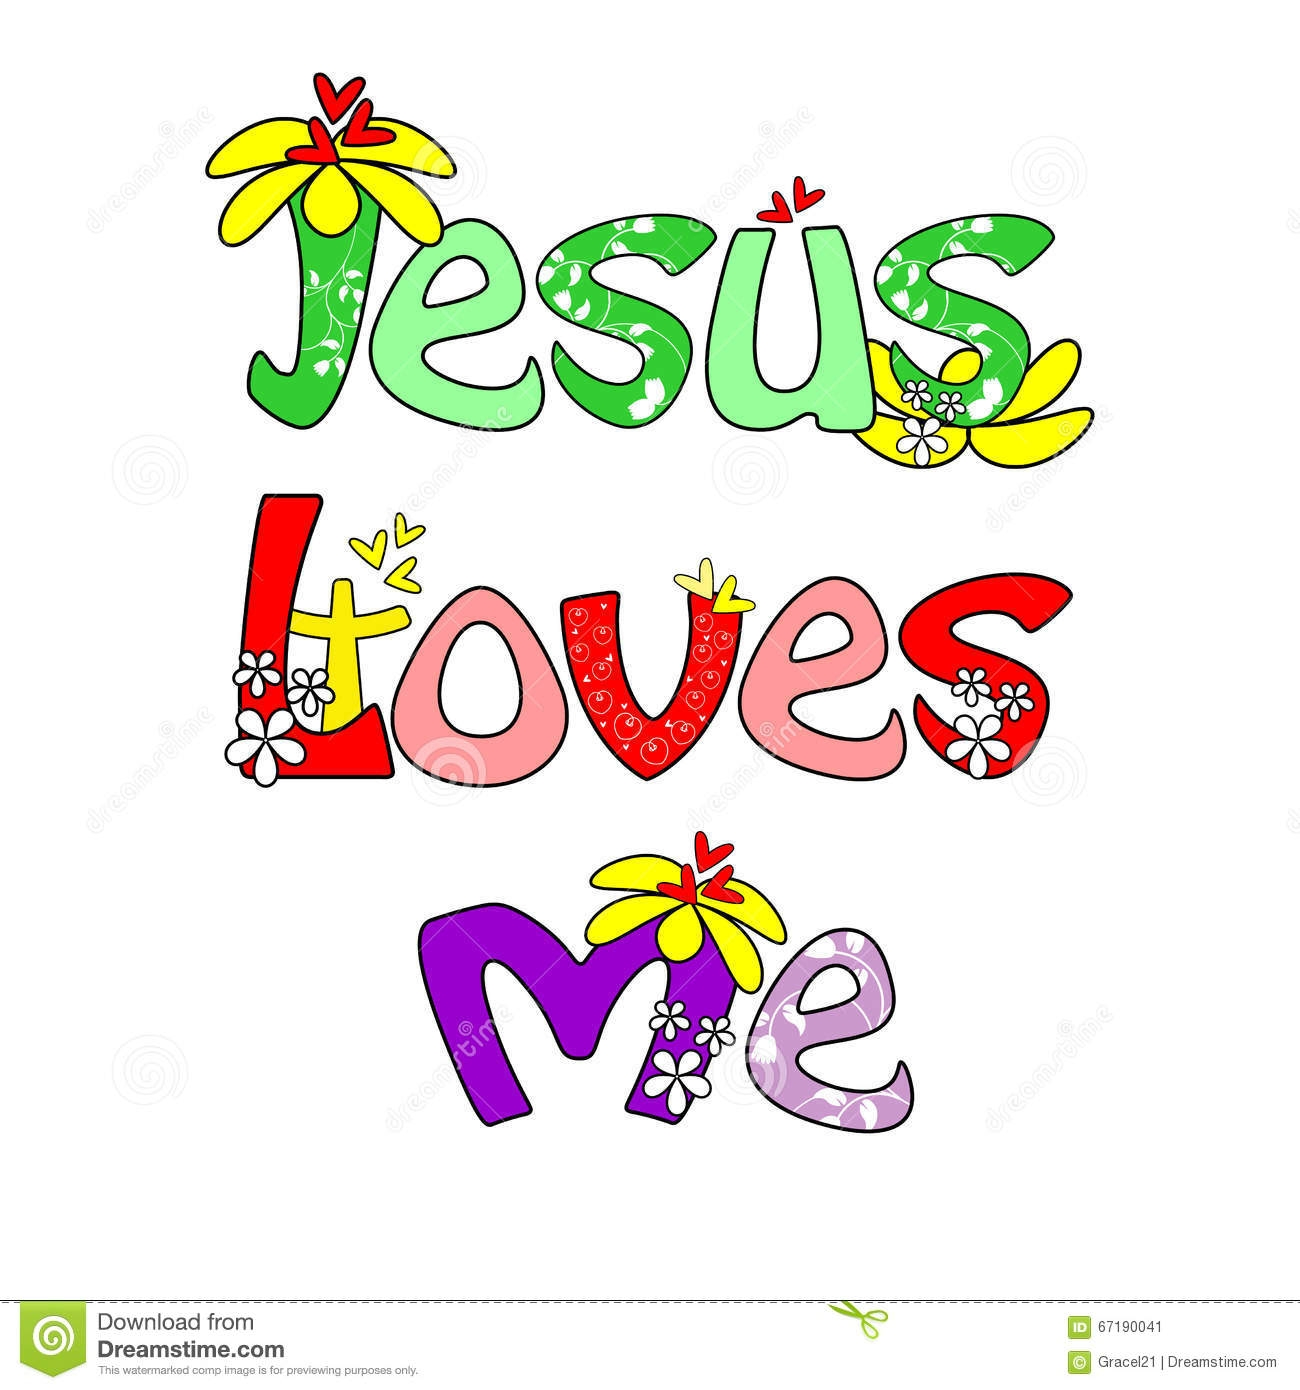 HD-images-of-jesus-love-me-Jesus-Loves-Me-Royalty-Free-Stock-Image-Image-pertaining-to-H-wallpaper-wp3406687